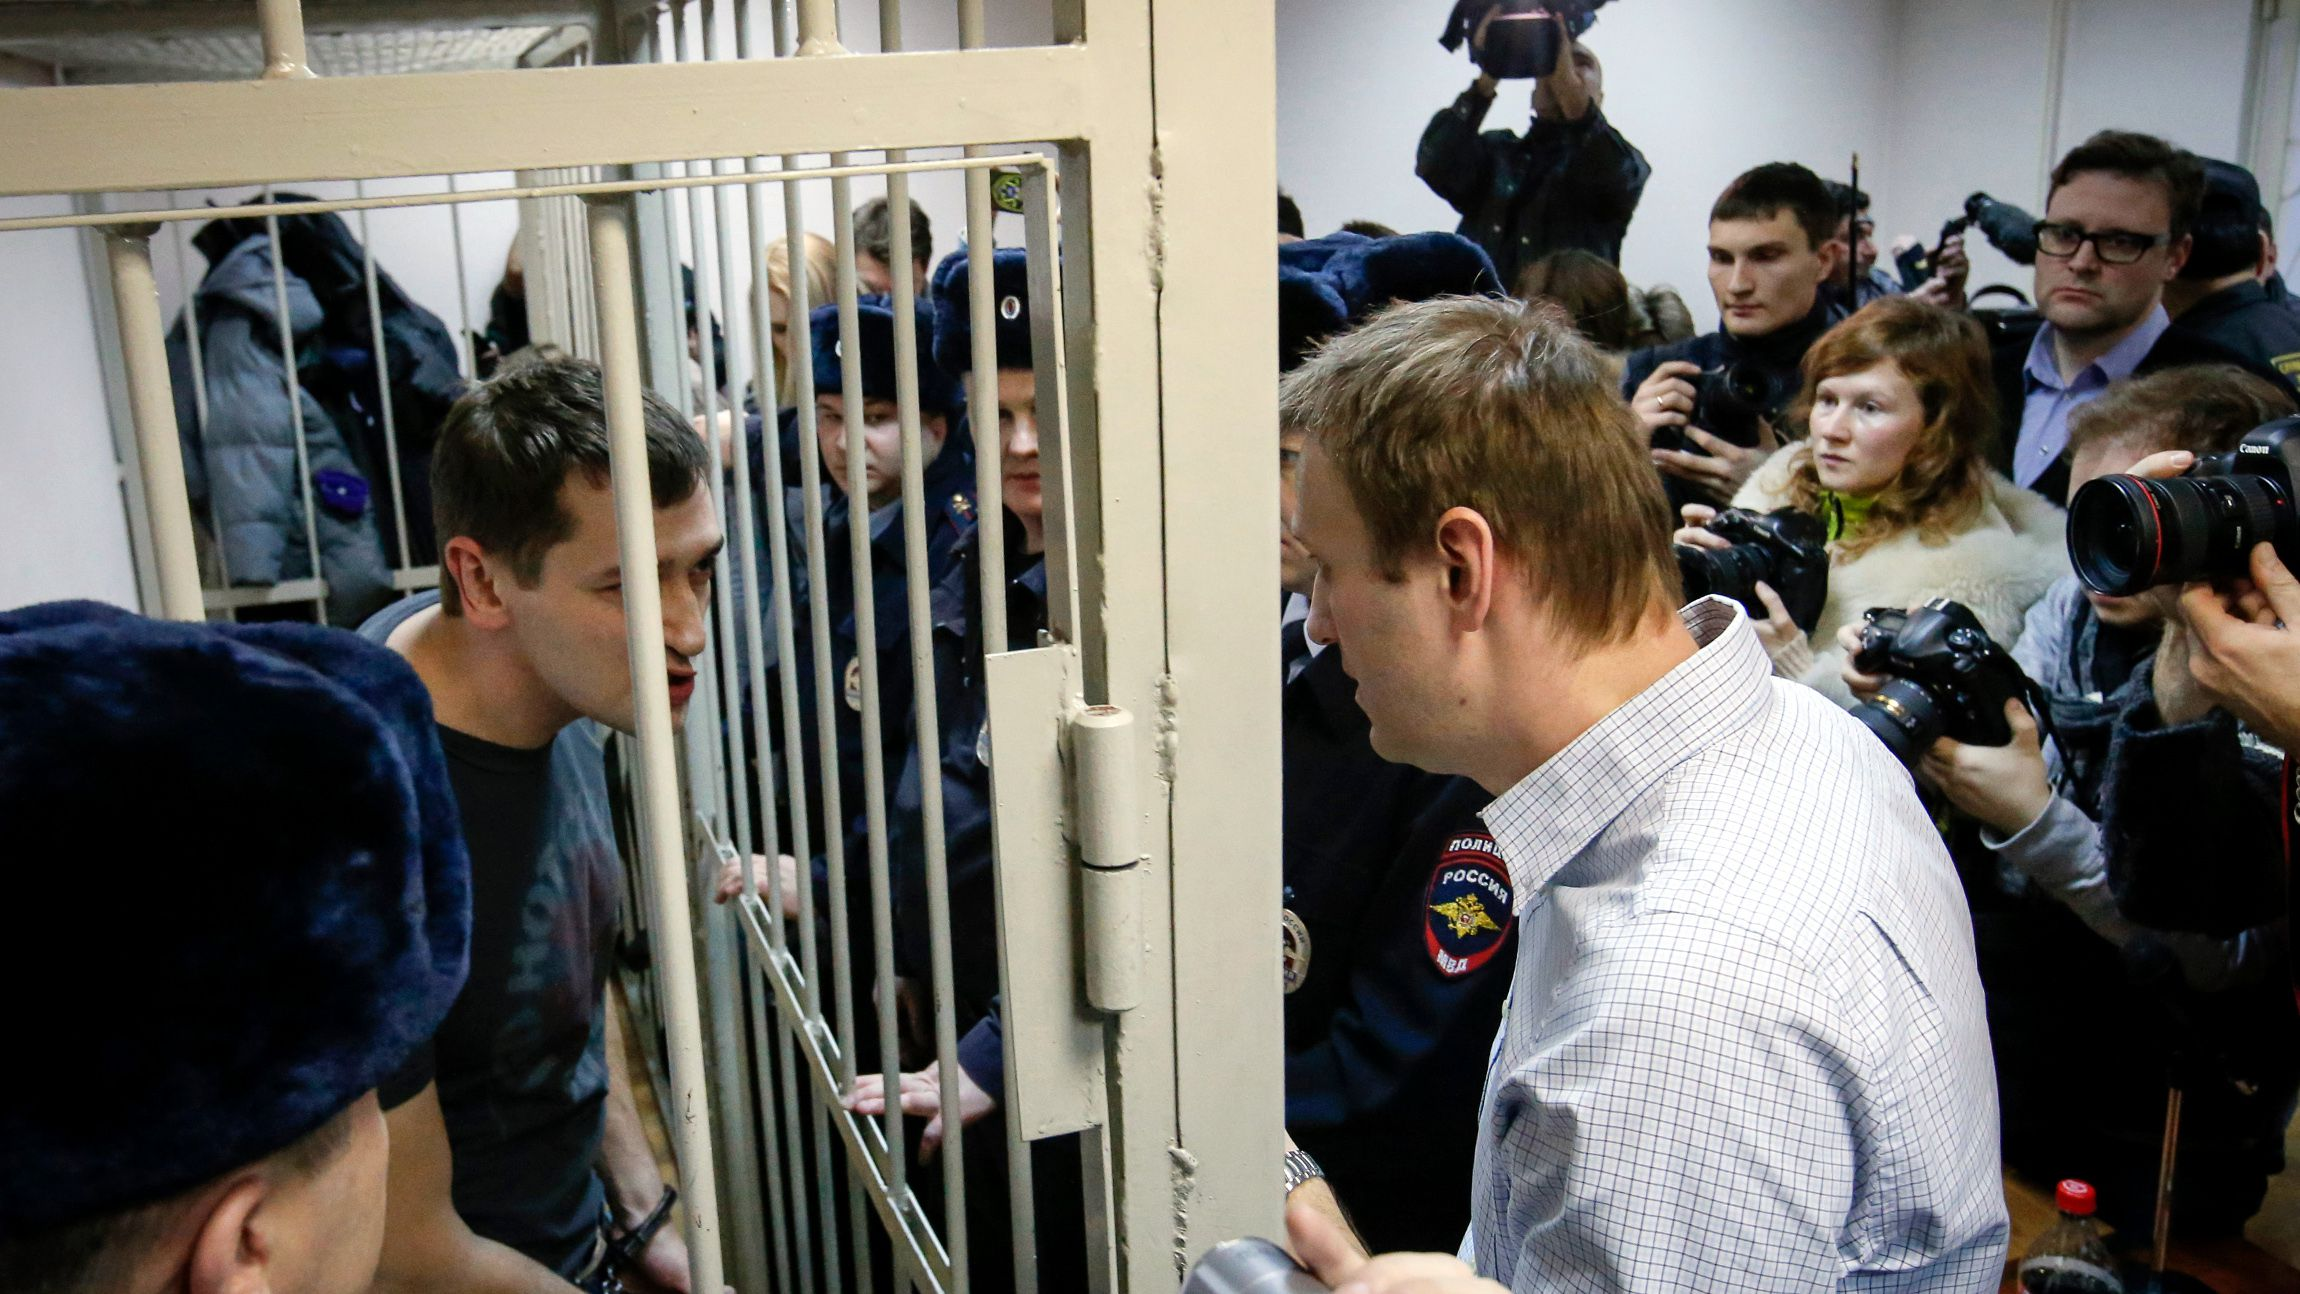 Russian opposition leader and anti-corruption blogger Alexei Navalny (R) talks with his brother and co-defendant Oleg (inside defendants cage) during a court hearing in Moscow December 30, 2014. A Russian court ruled on Tuesday to give Kremlin critic Alexei Navalny a suspended sentence for embezzling money but jailed his brother for three and a half years in a case seen as part of a campaign to stifle dissent.